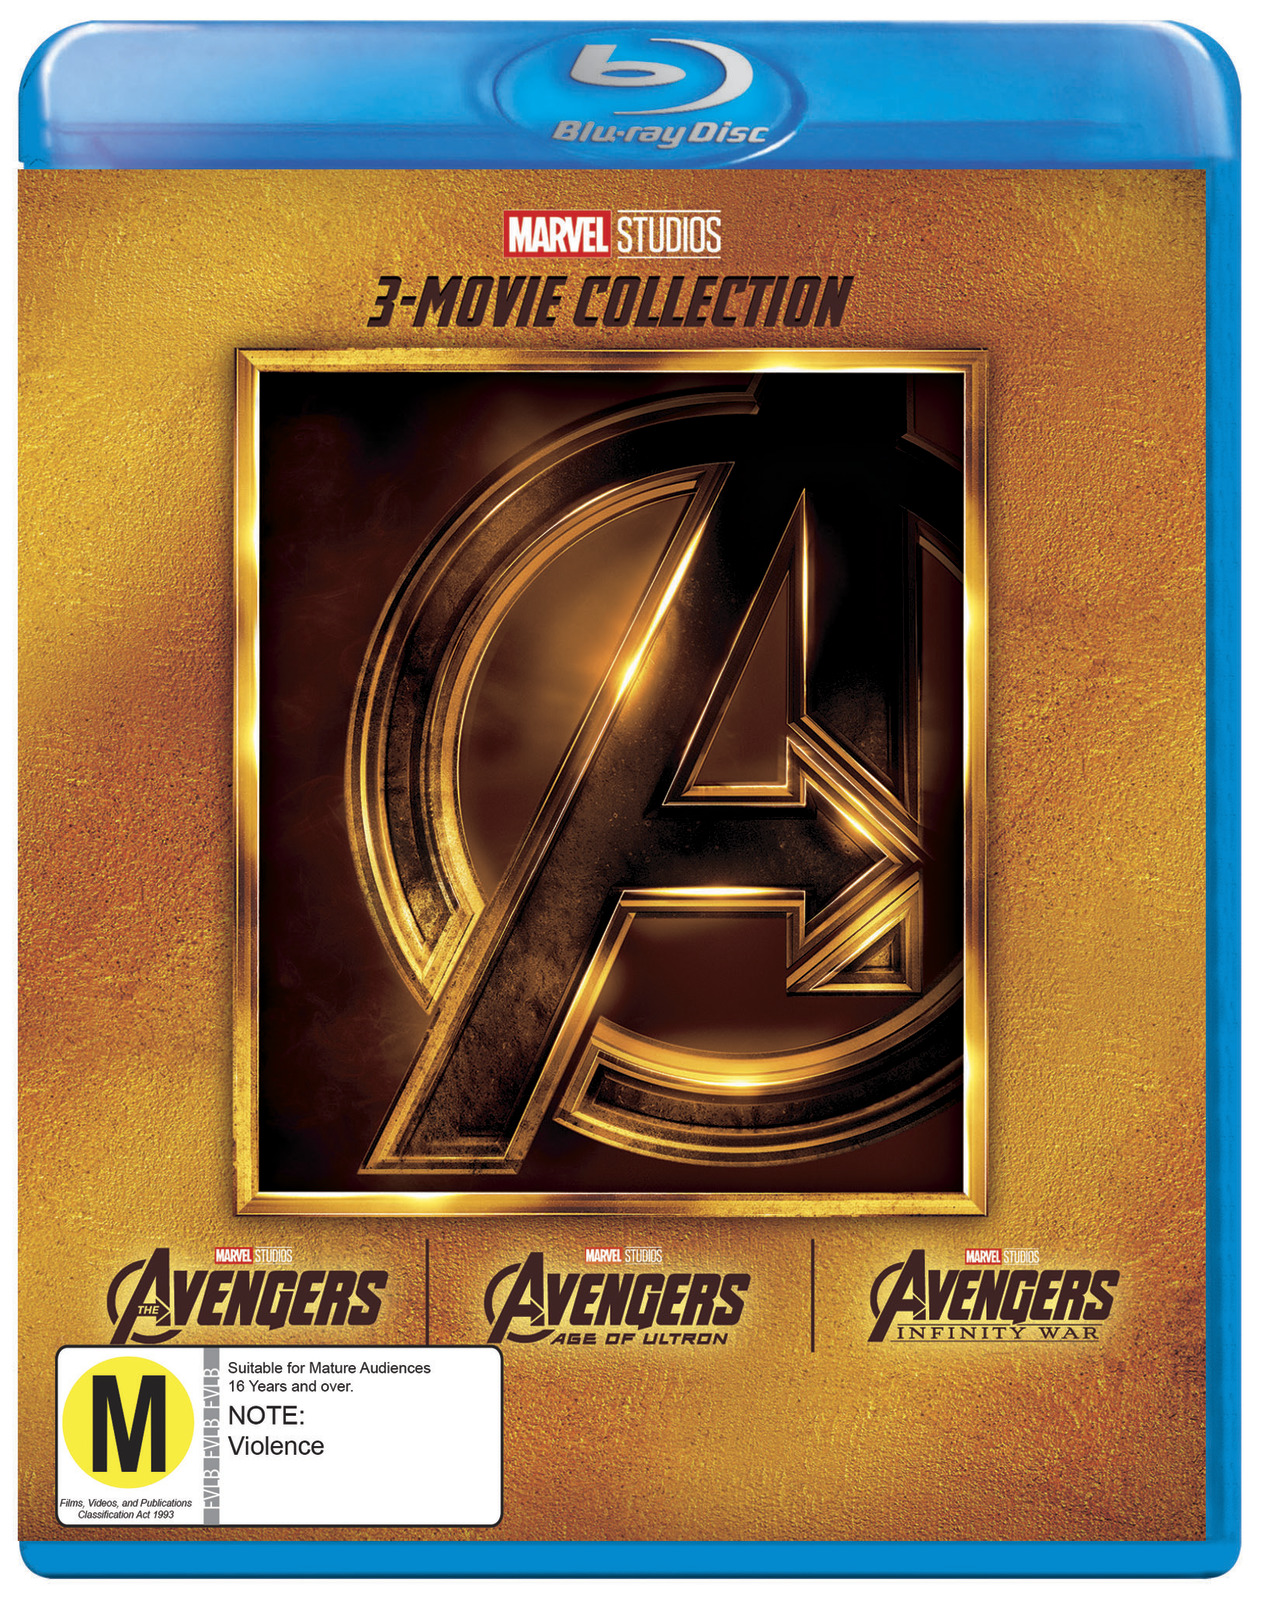 The Avengers: 3 Movie Collection